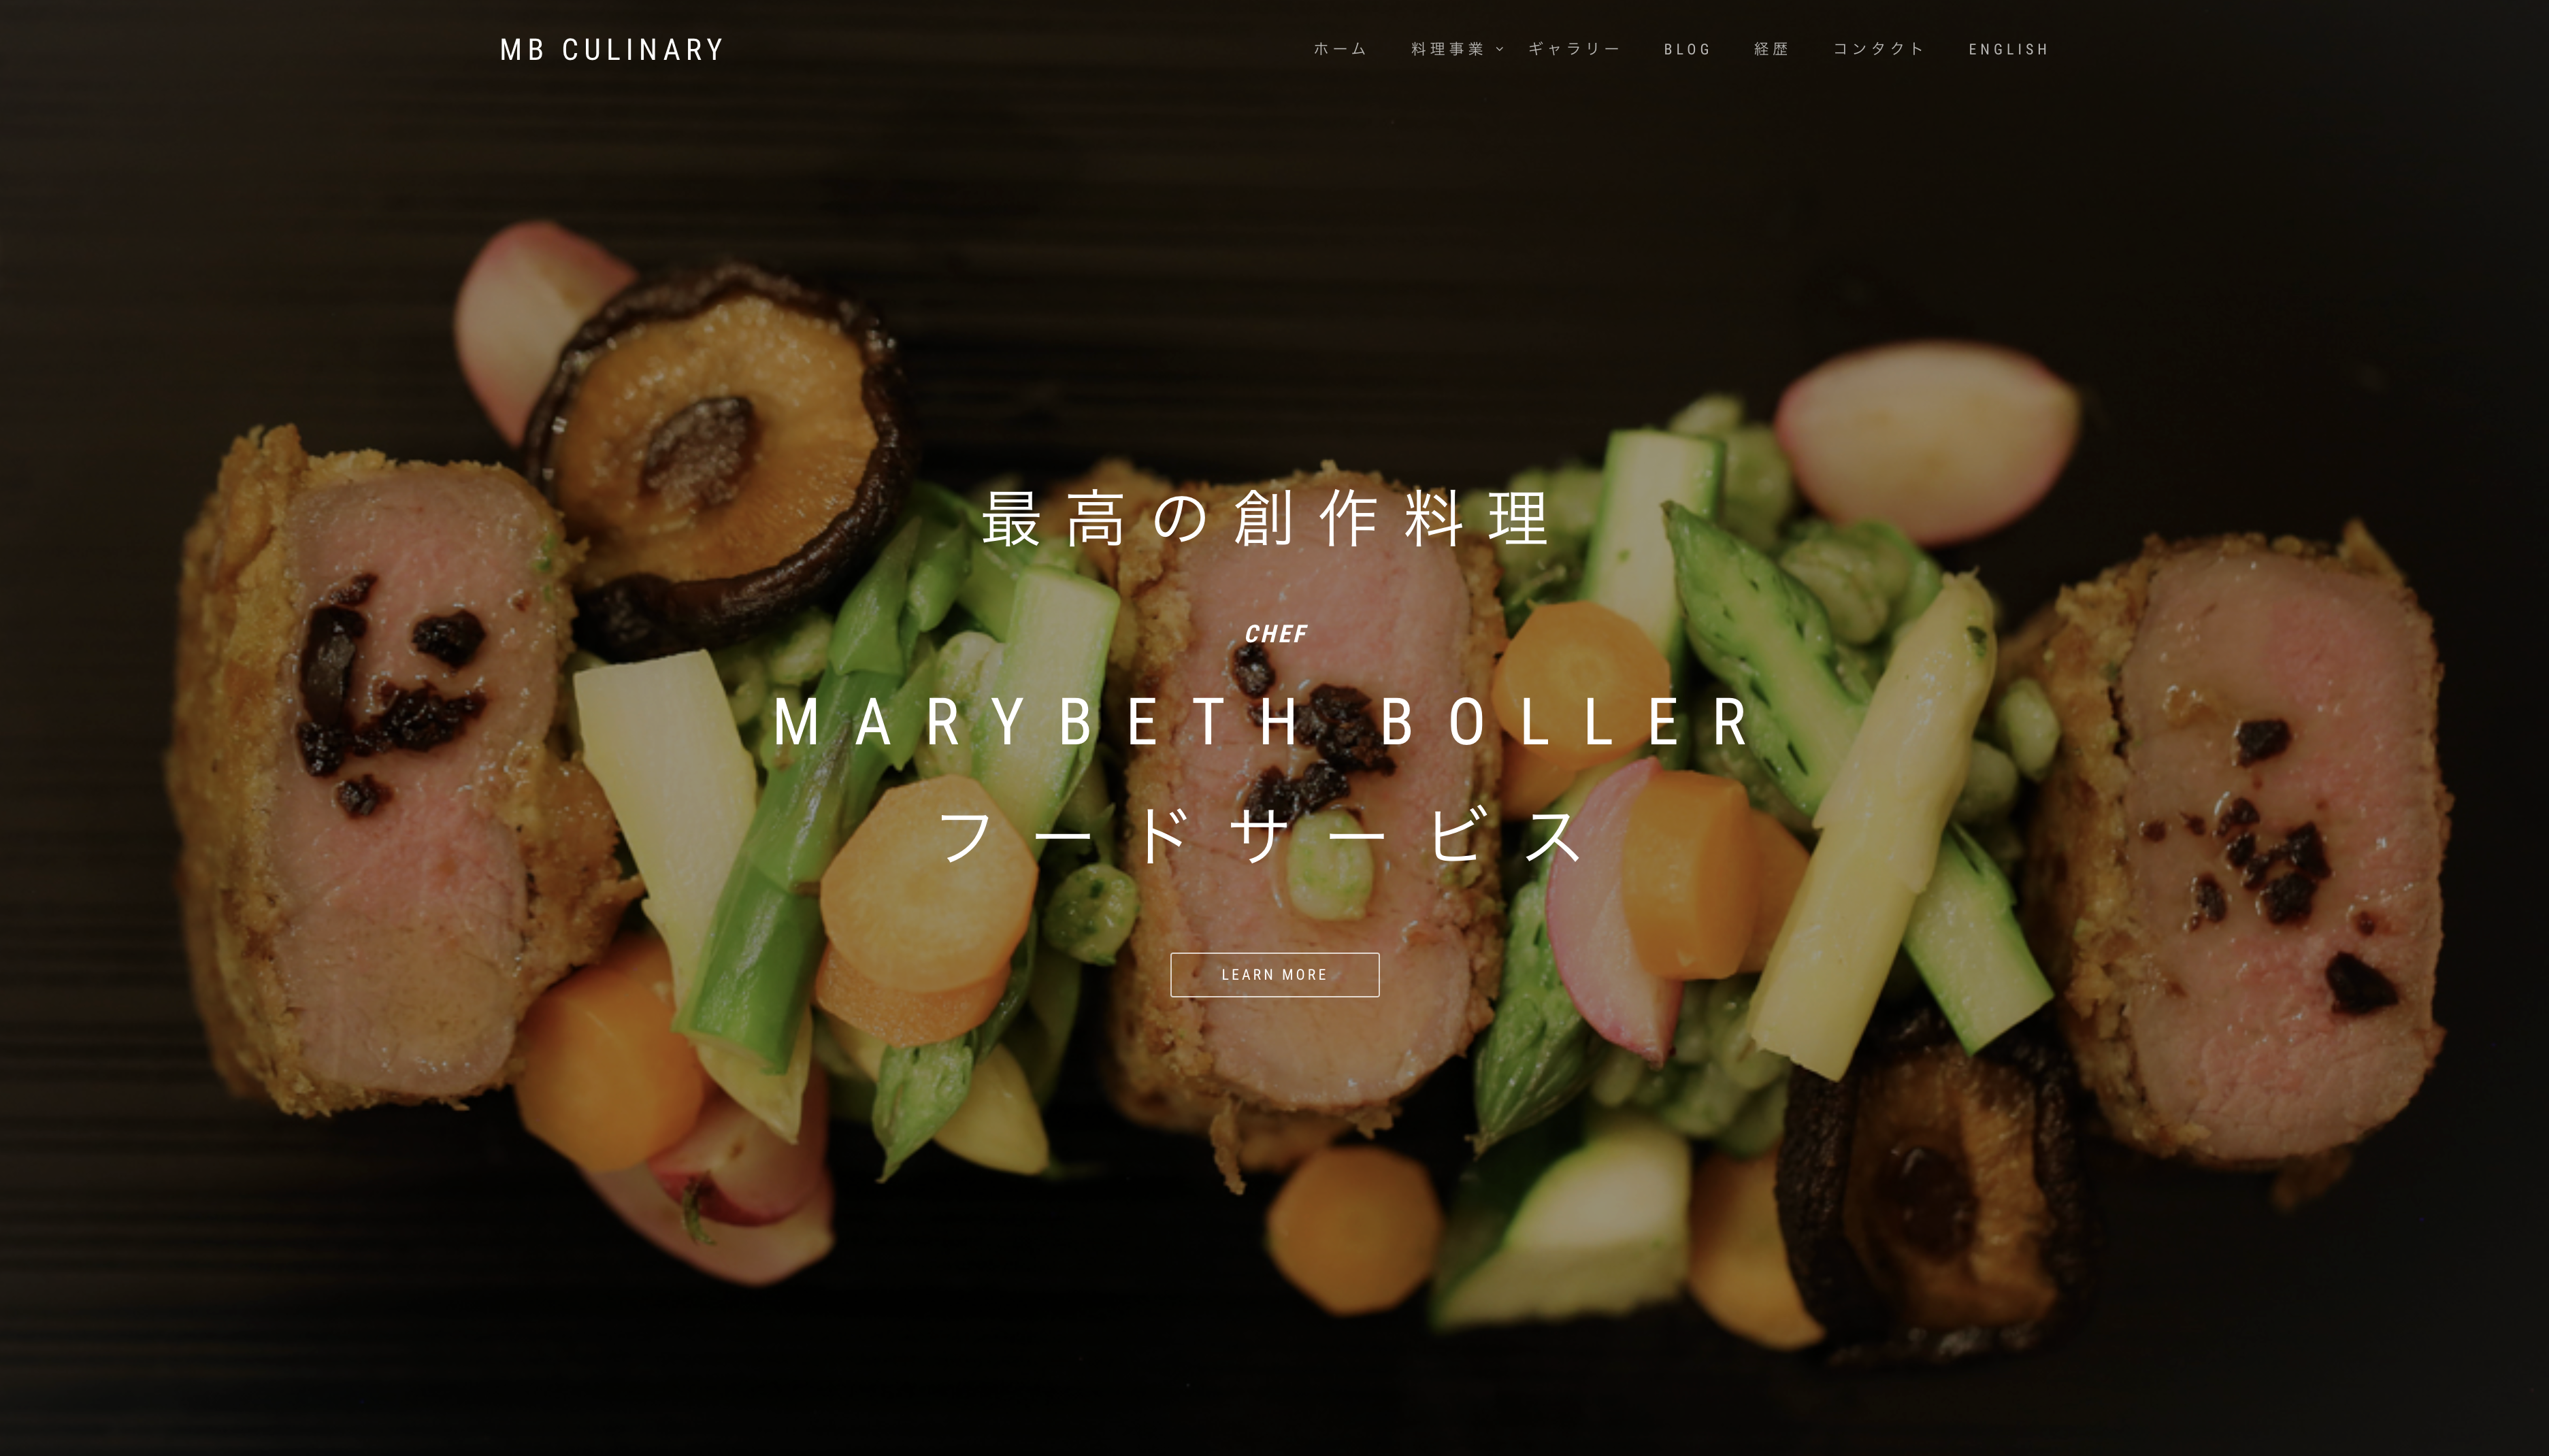 MB Culinary - Website Direction and Design